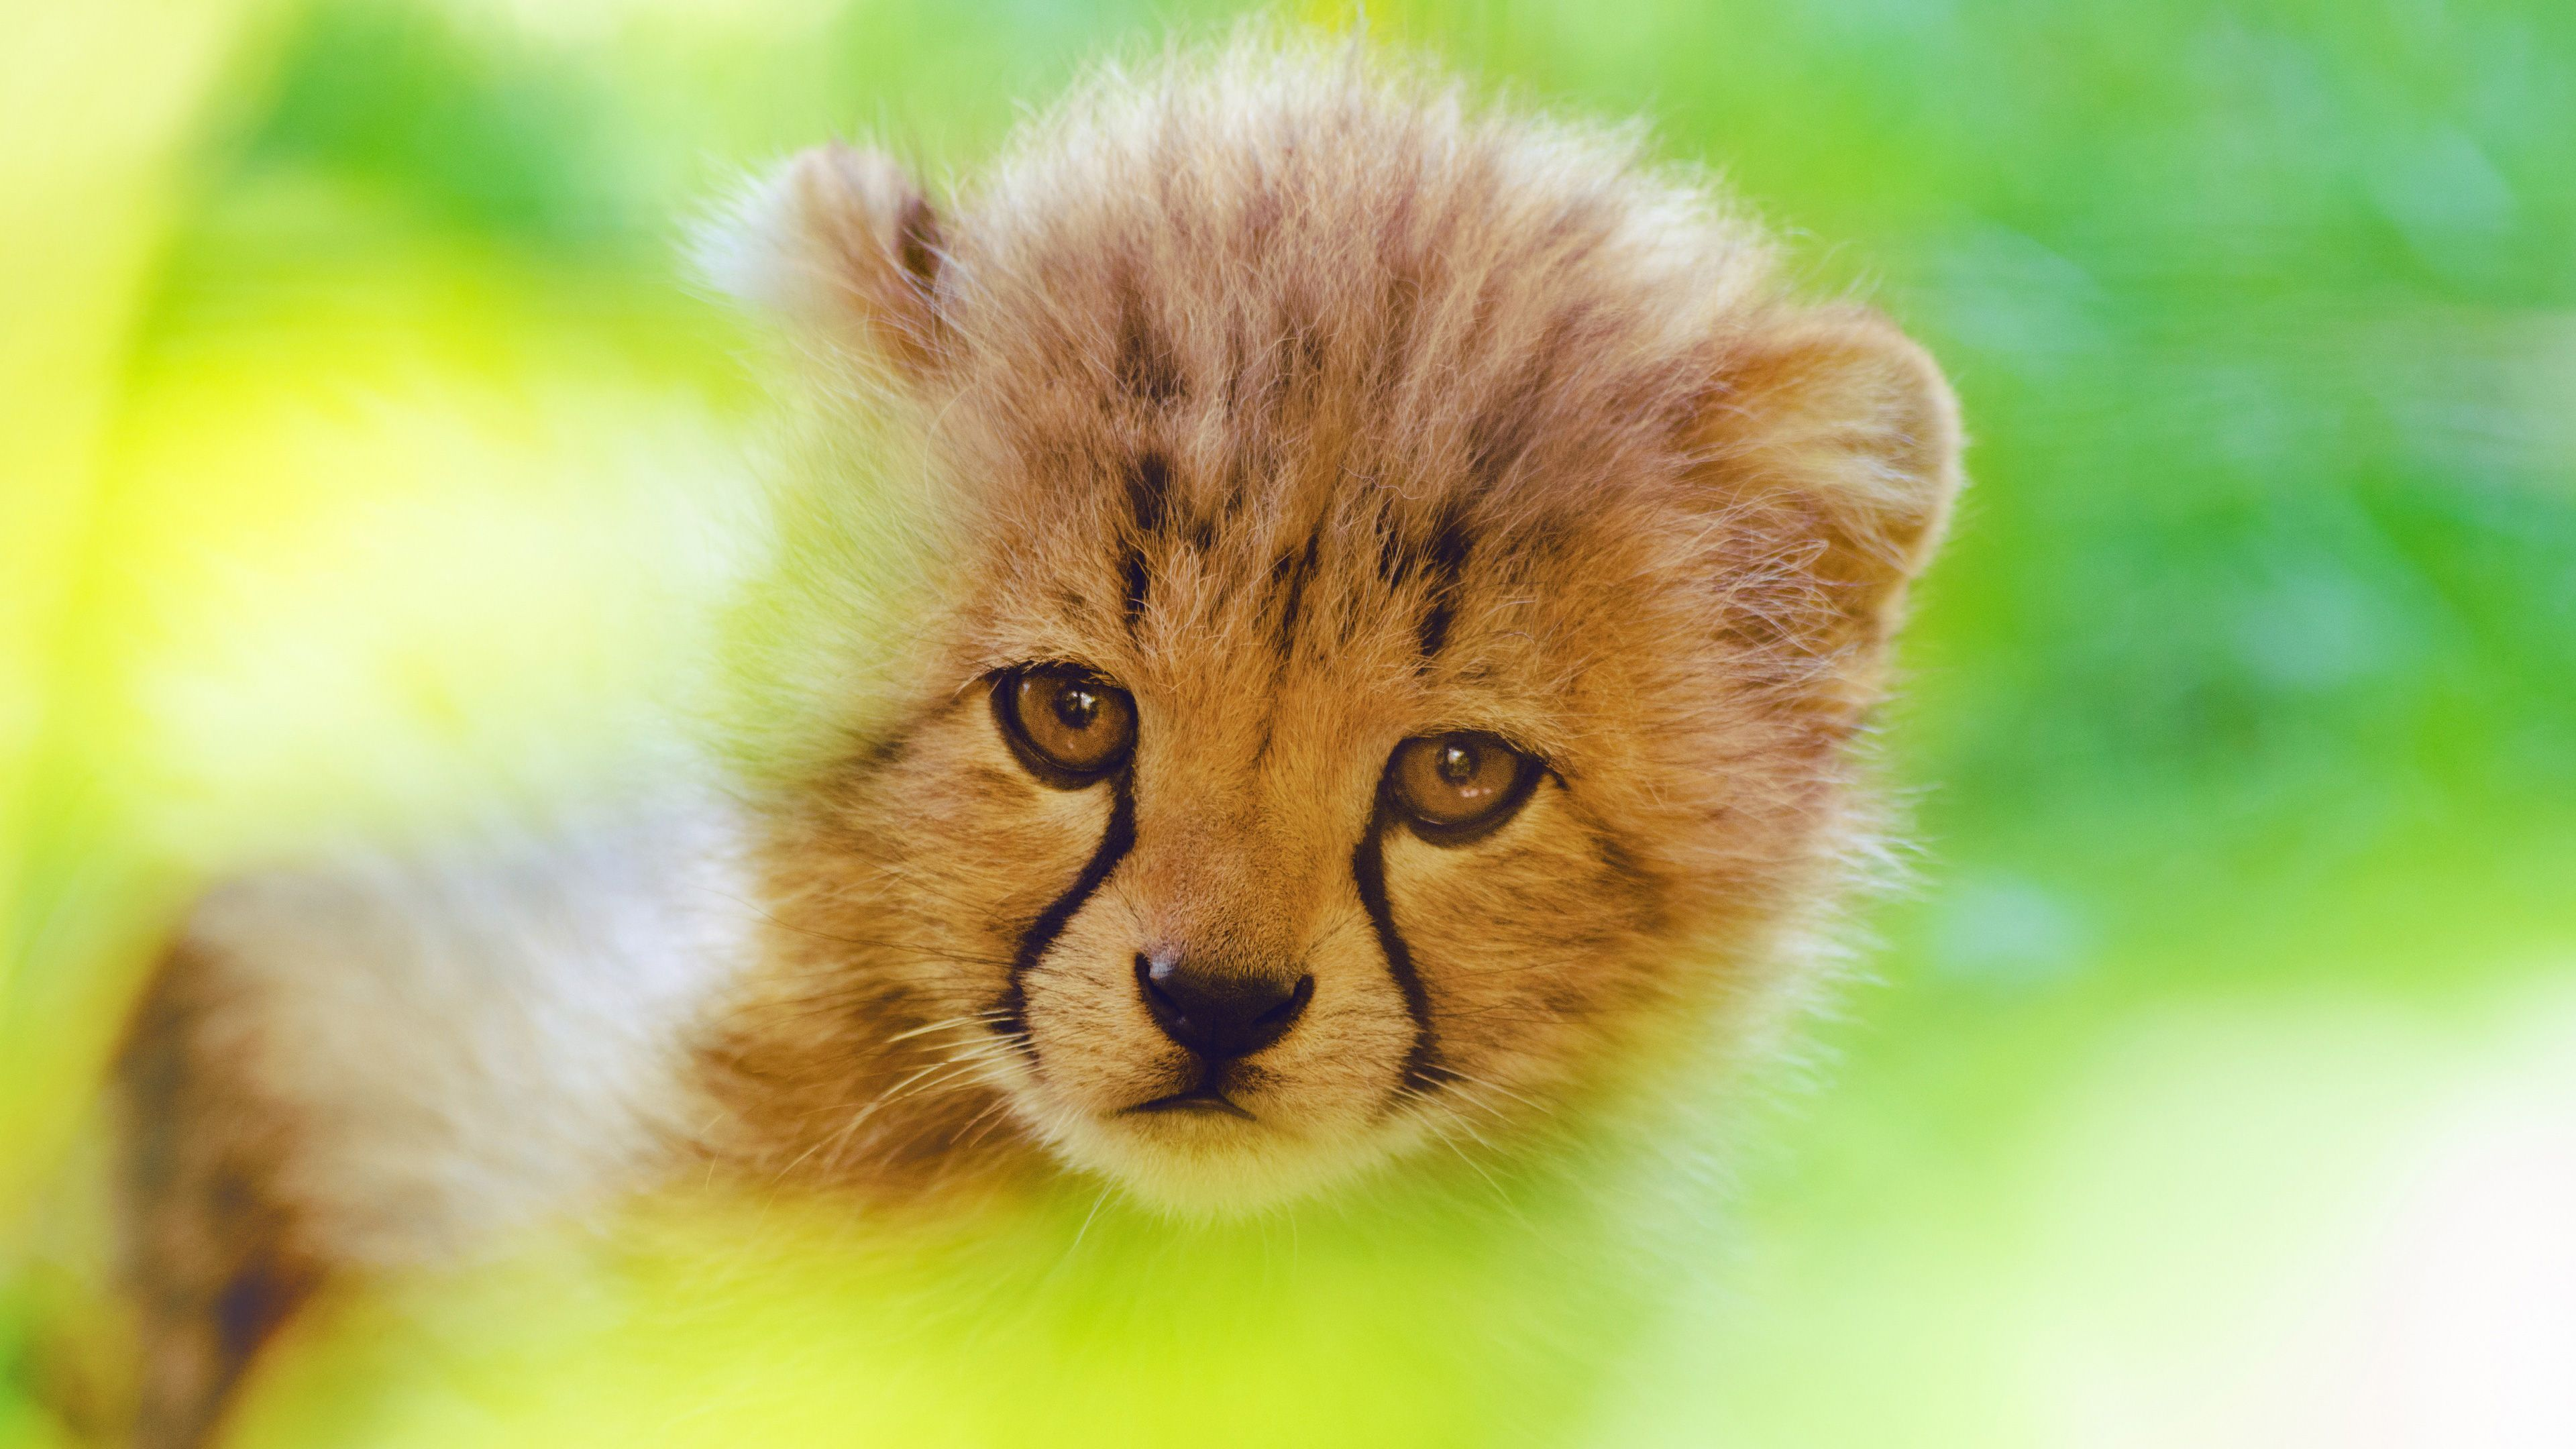 3840x2160 Cheetah Cute Cub 4k, HD Animals, 4k Wallpapers, Images, Backgrounds ...